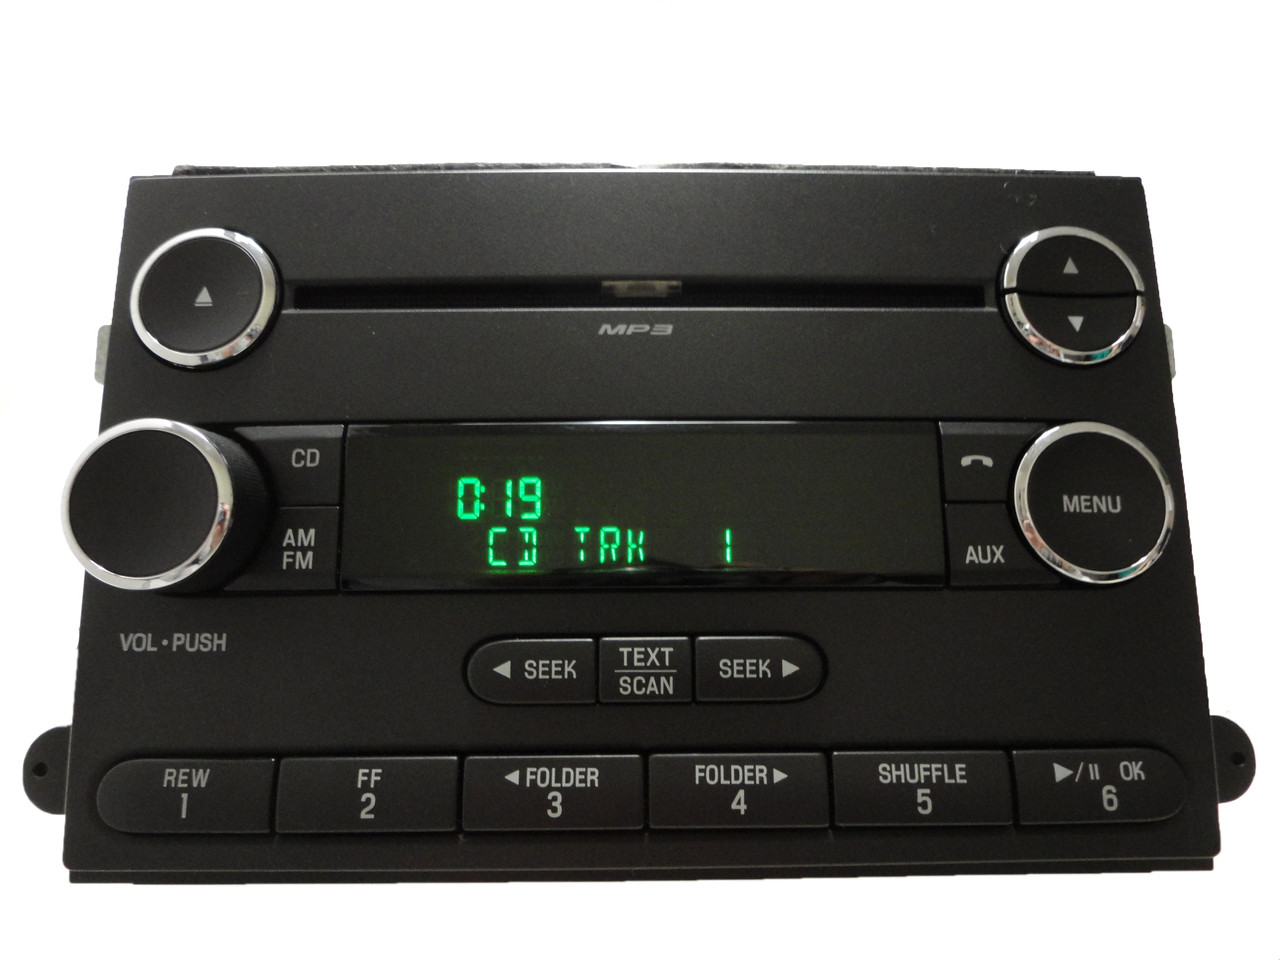 08 09 ford fusion mercury milan am fm radio stereo mp3 cd. Black Bedroom Furniture Sets. Home Design Ideas